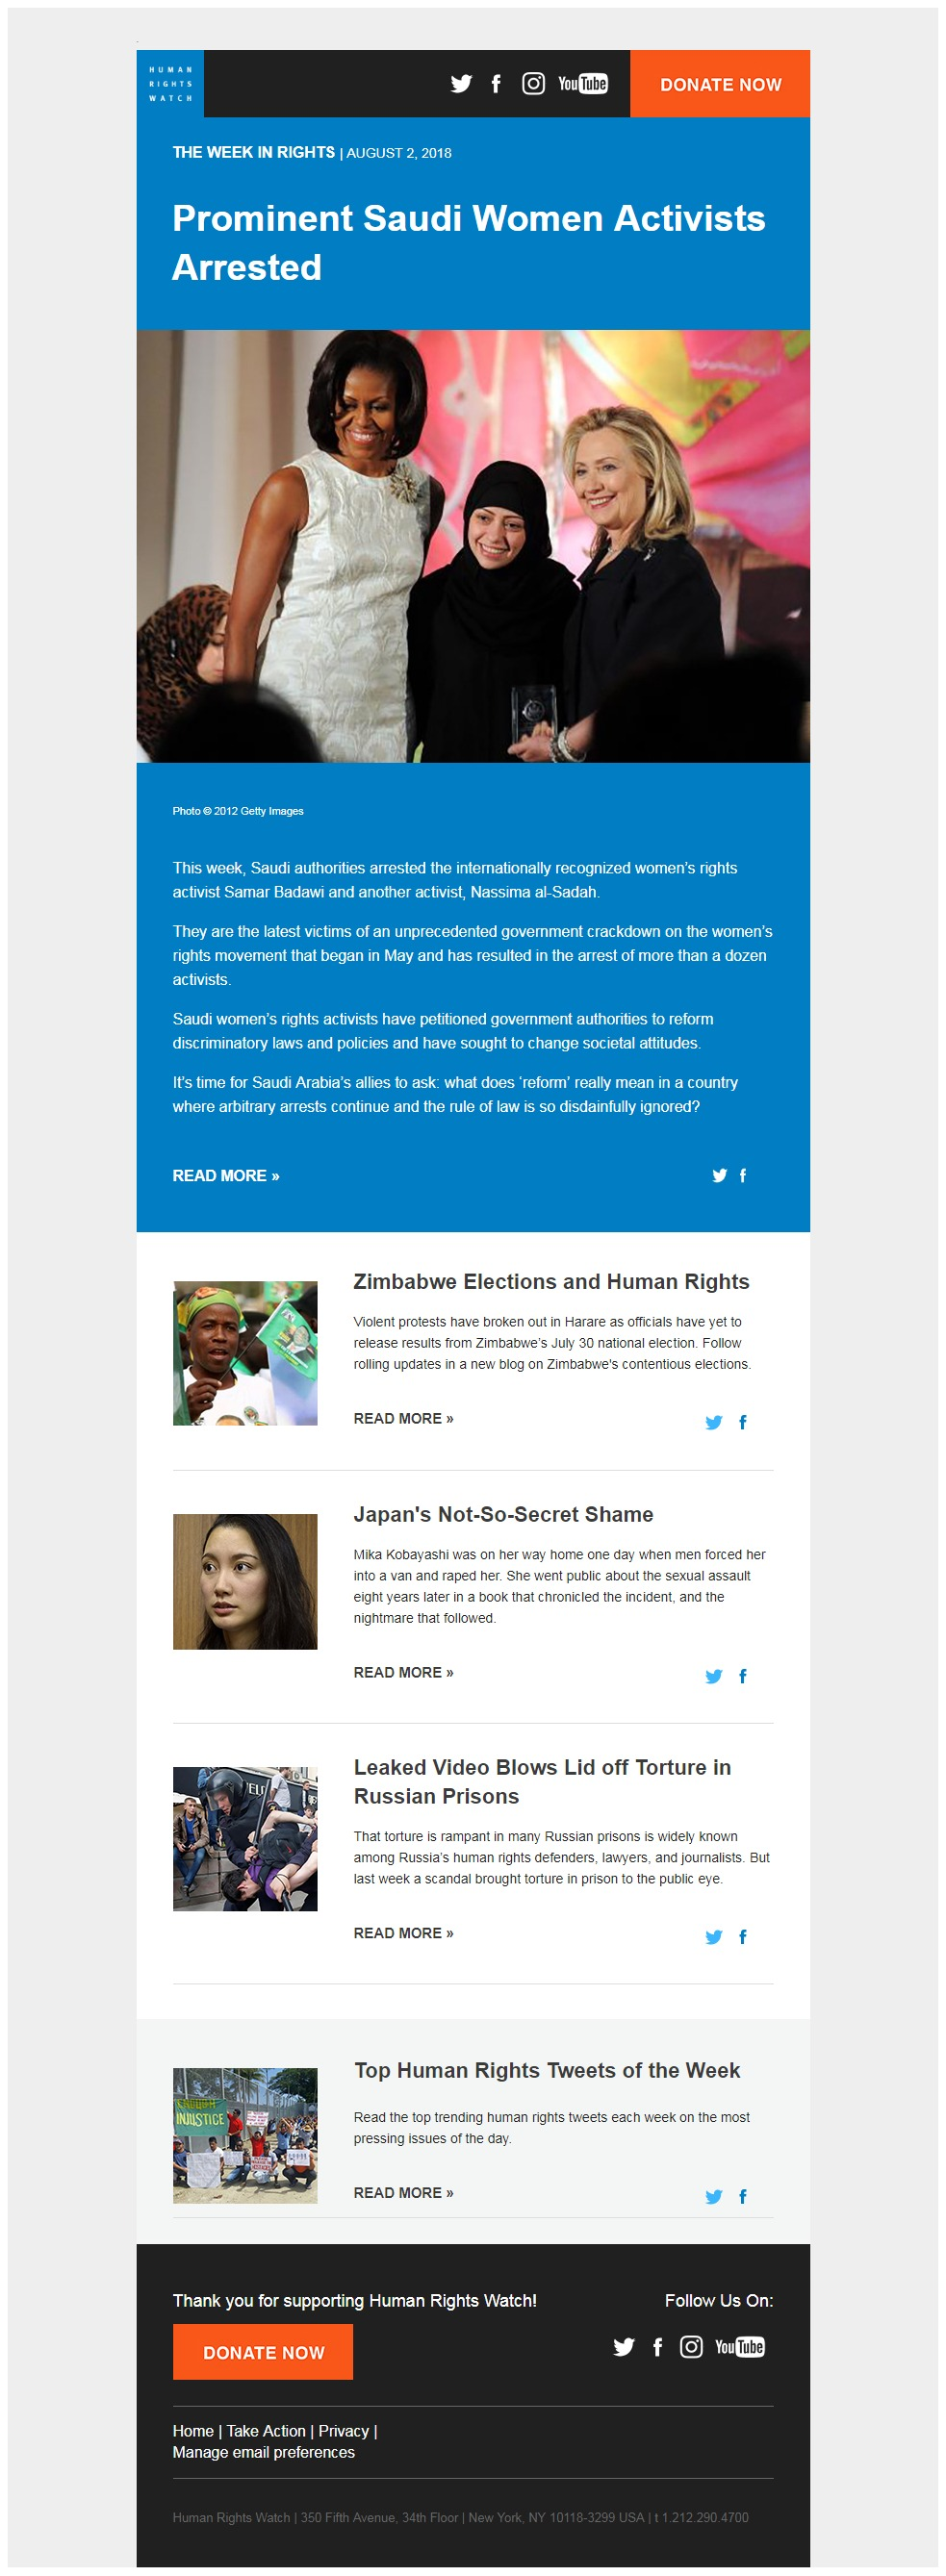 Charity Email - Human Rights Watch